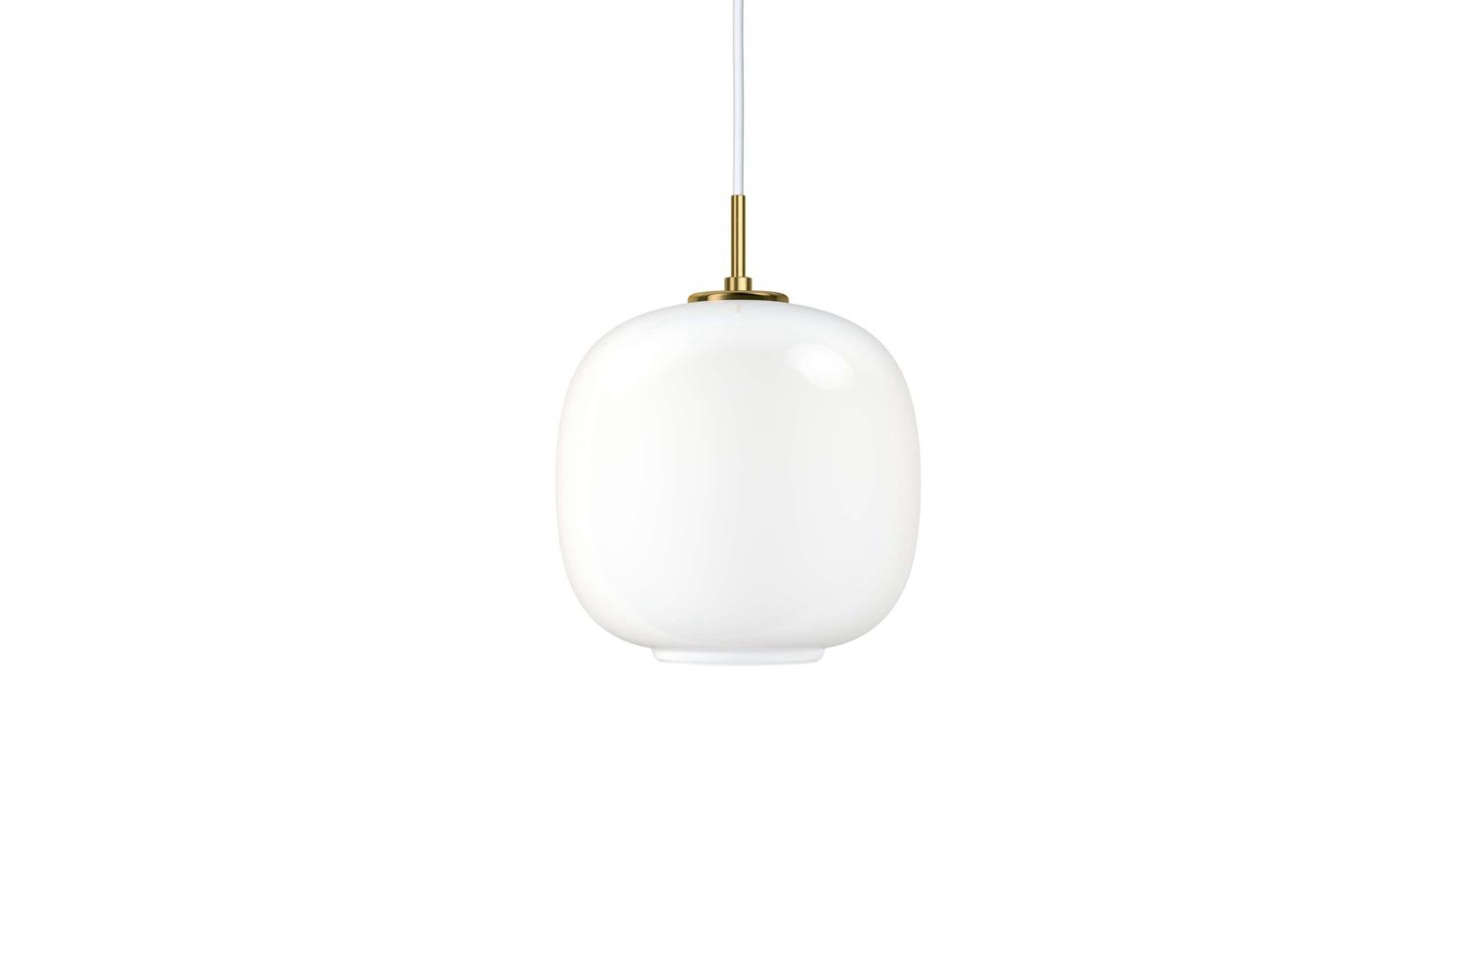 :Each Radiohus pendant is made of three layers of handblown glass, with the innermost and outermost layers made of transparent polished glass, with white glass for the middle layer. The Large VL45 Radiohus Pendant is $830 and the Small VL45 Radiohus Pendant is $620 at Y Lighting.